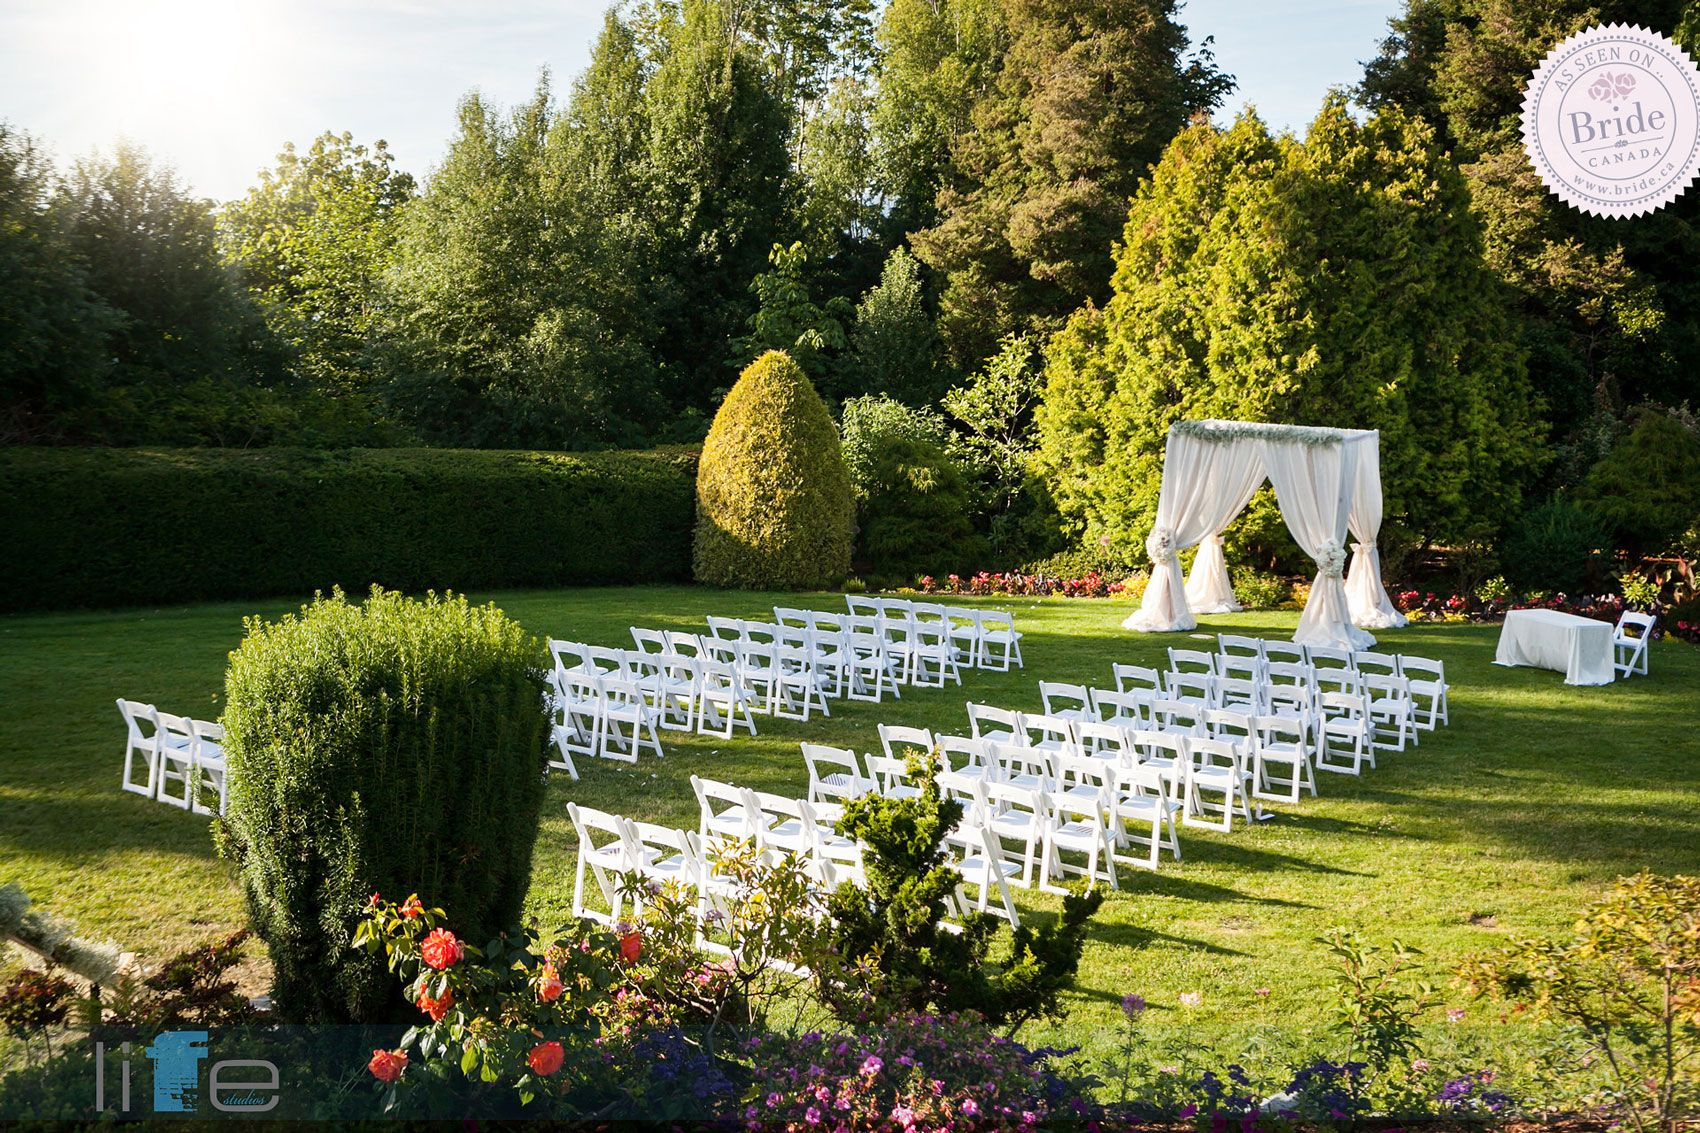 Wedding Ceremony Packages: The Beautiful Grounds Of Cecil Green Park House Offer One